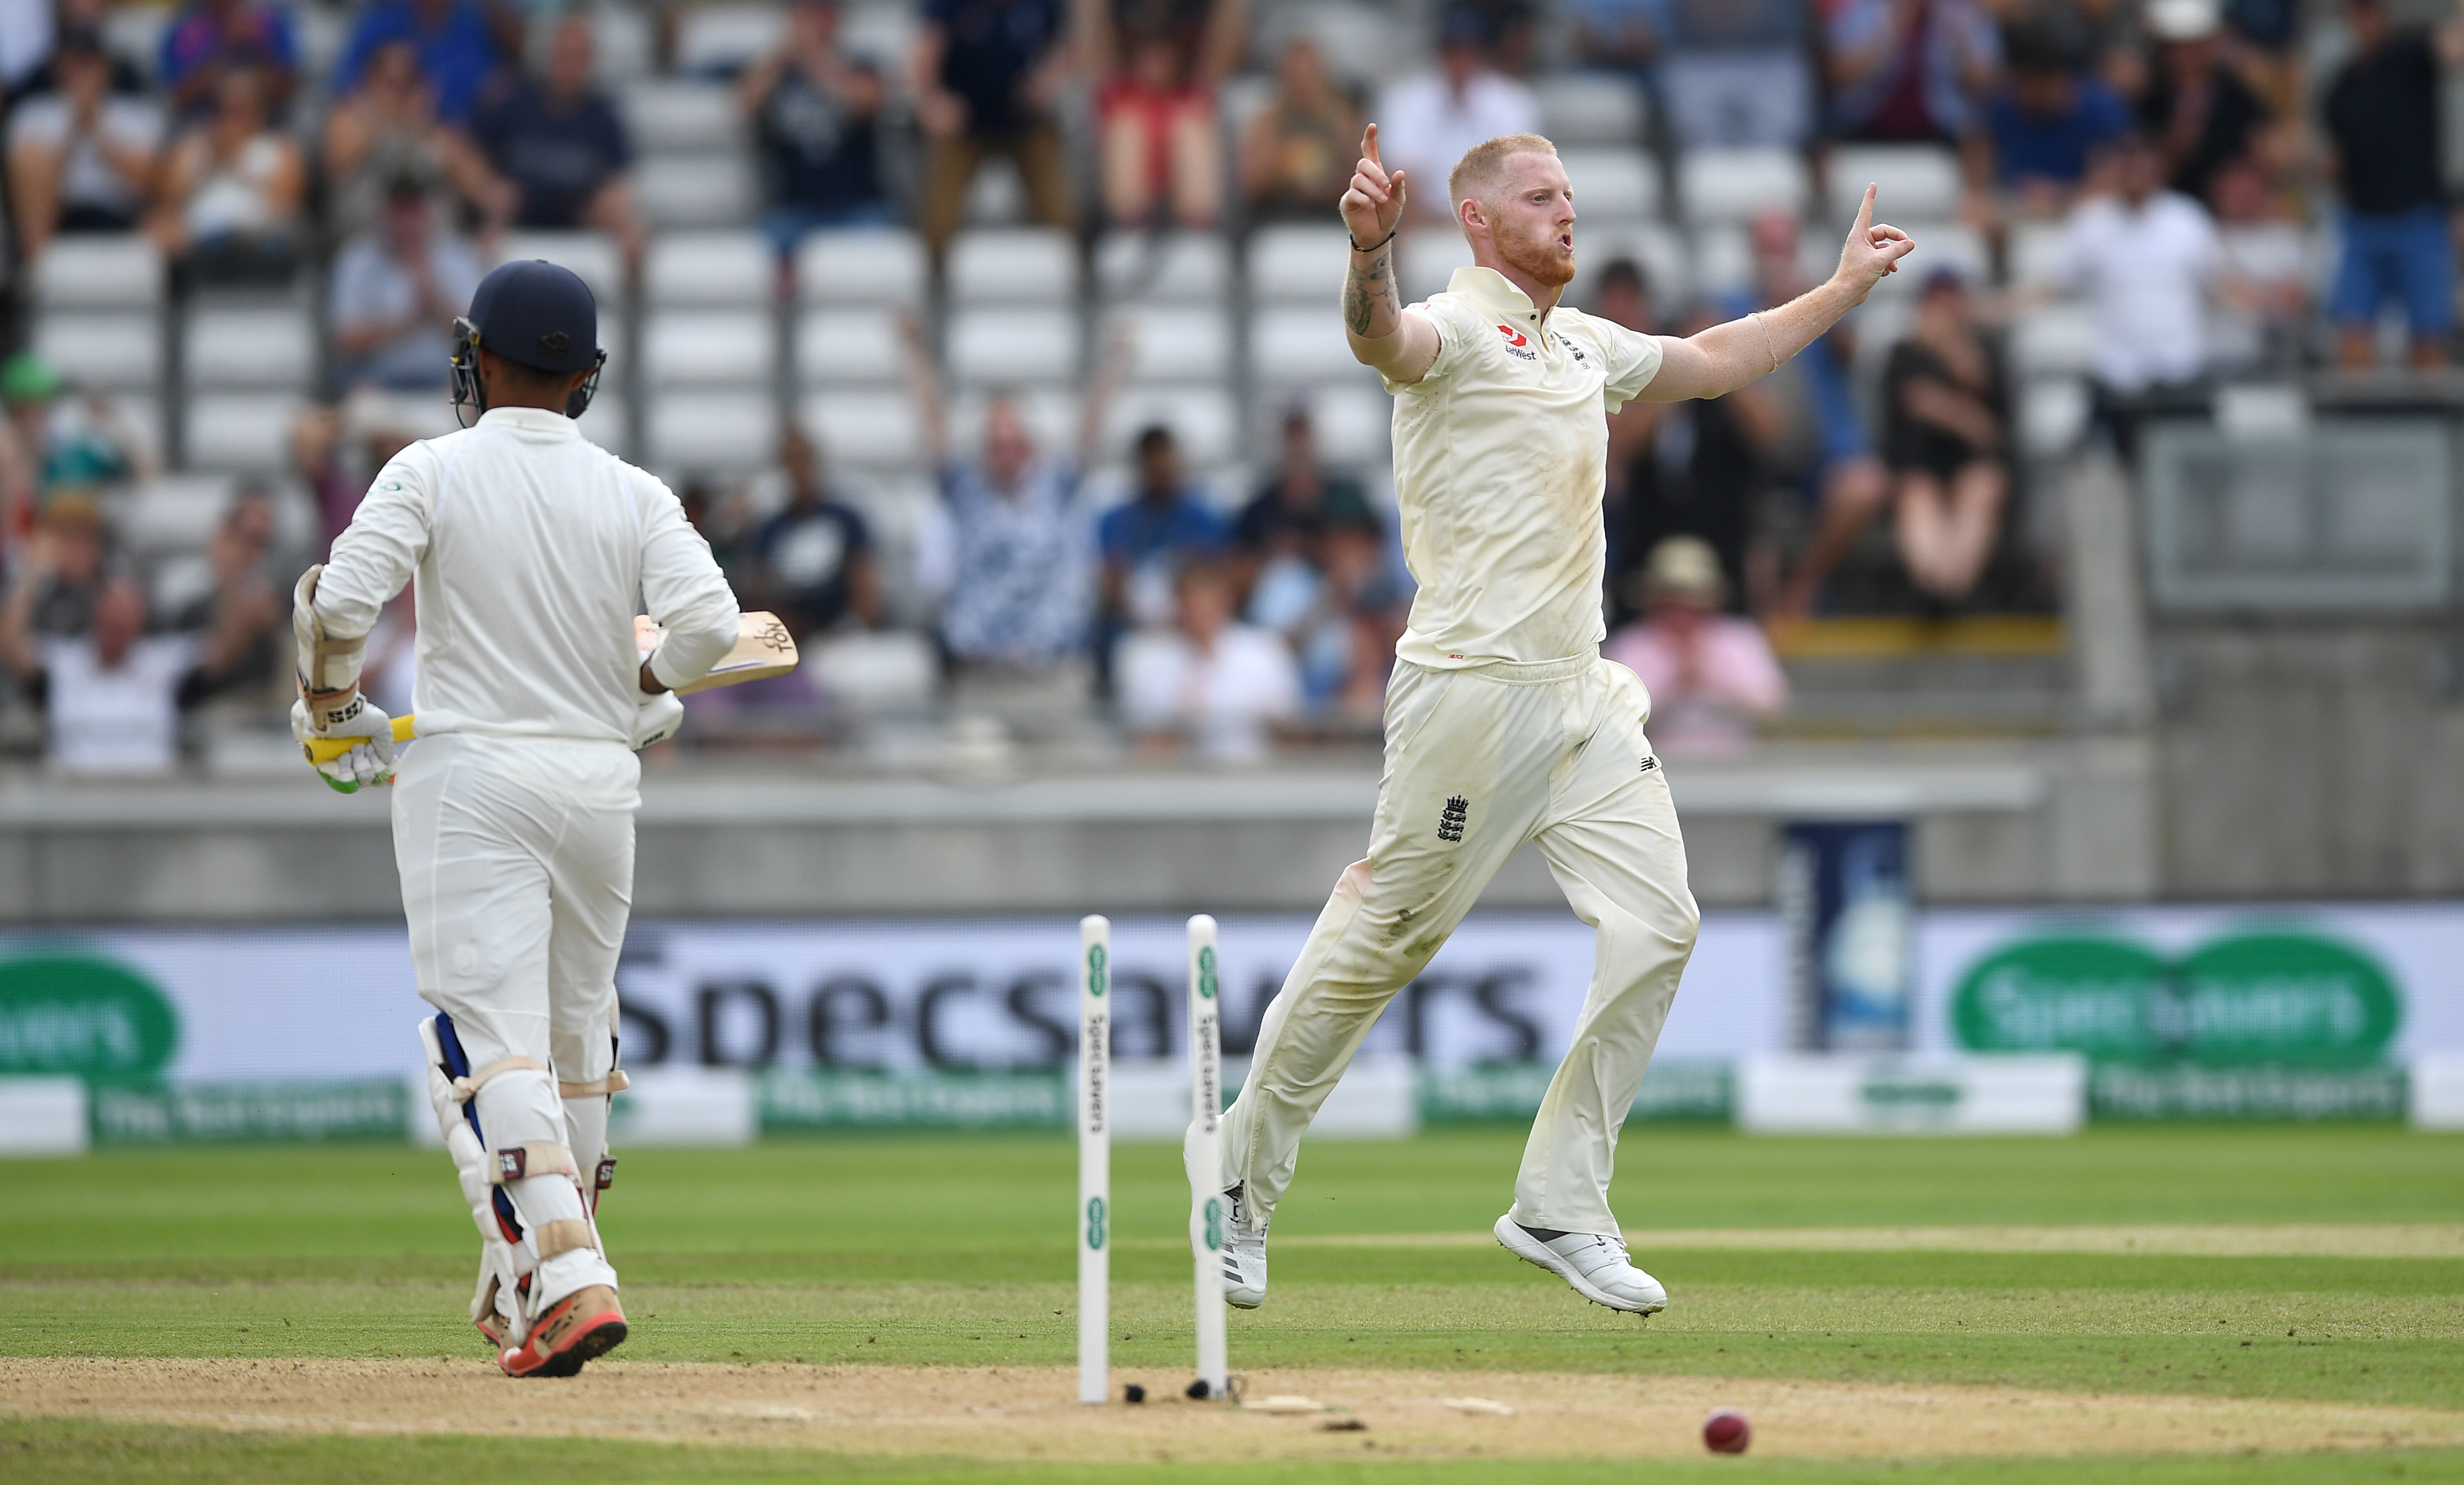 Ben Stokes bowled a brilliant spell on the second day of the Edgbaston Test. (Getty)